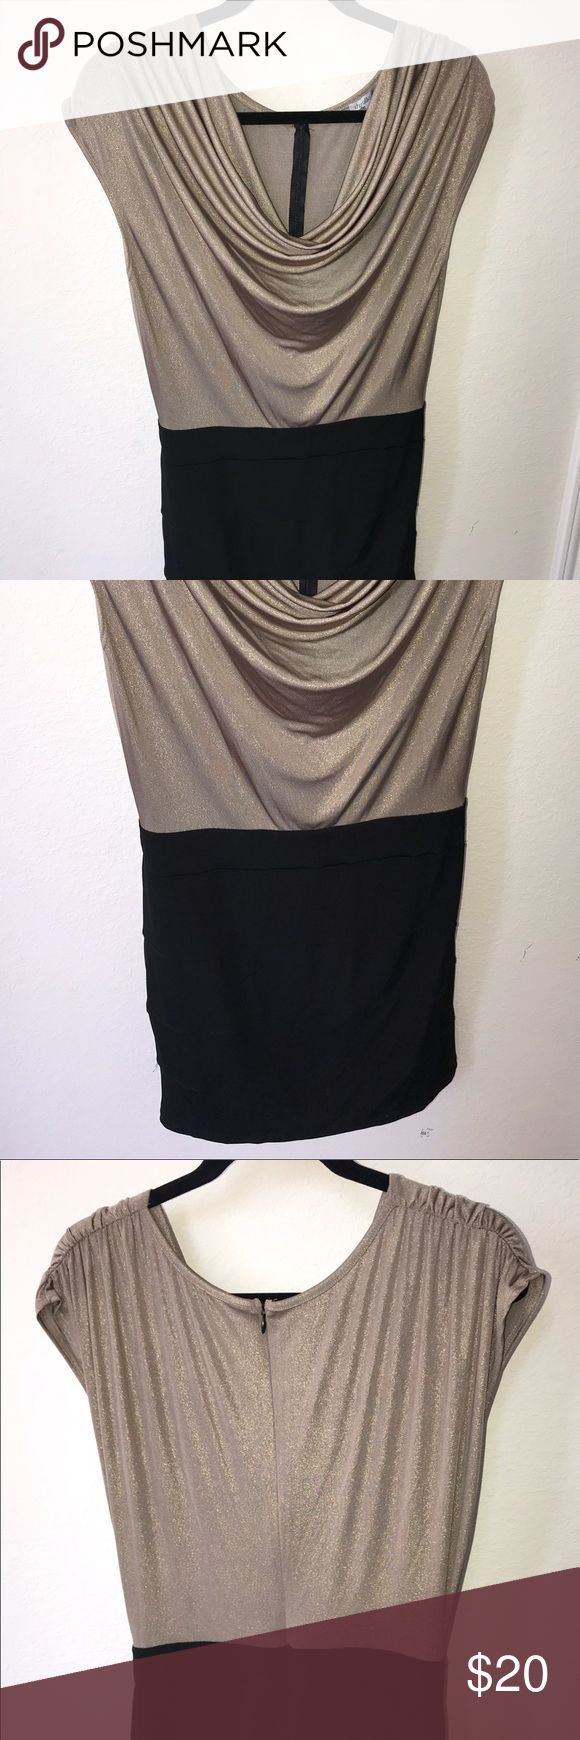 Never Worn* Charlotte Russe metallic mini dress Metallic gold top and black bandage bottom. I bought this for New Year's Eve, buuuut I got sick, didn't go out, so it's never been worn. Charlotte Russe Dresses